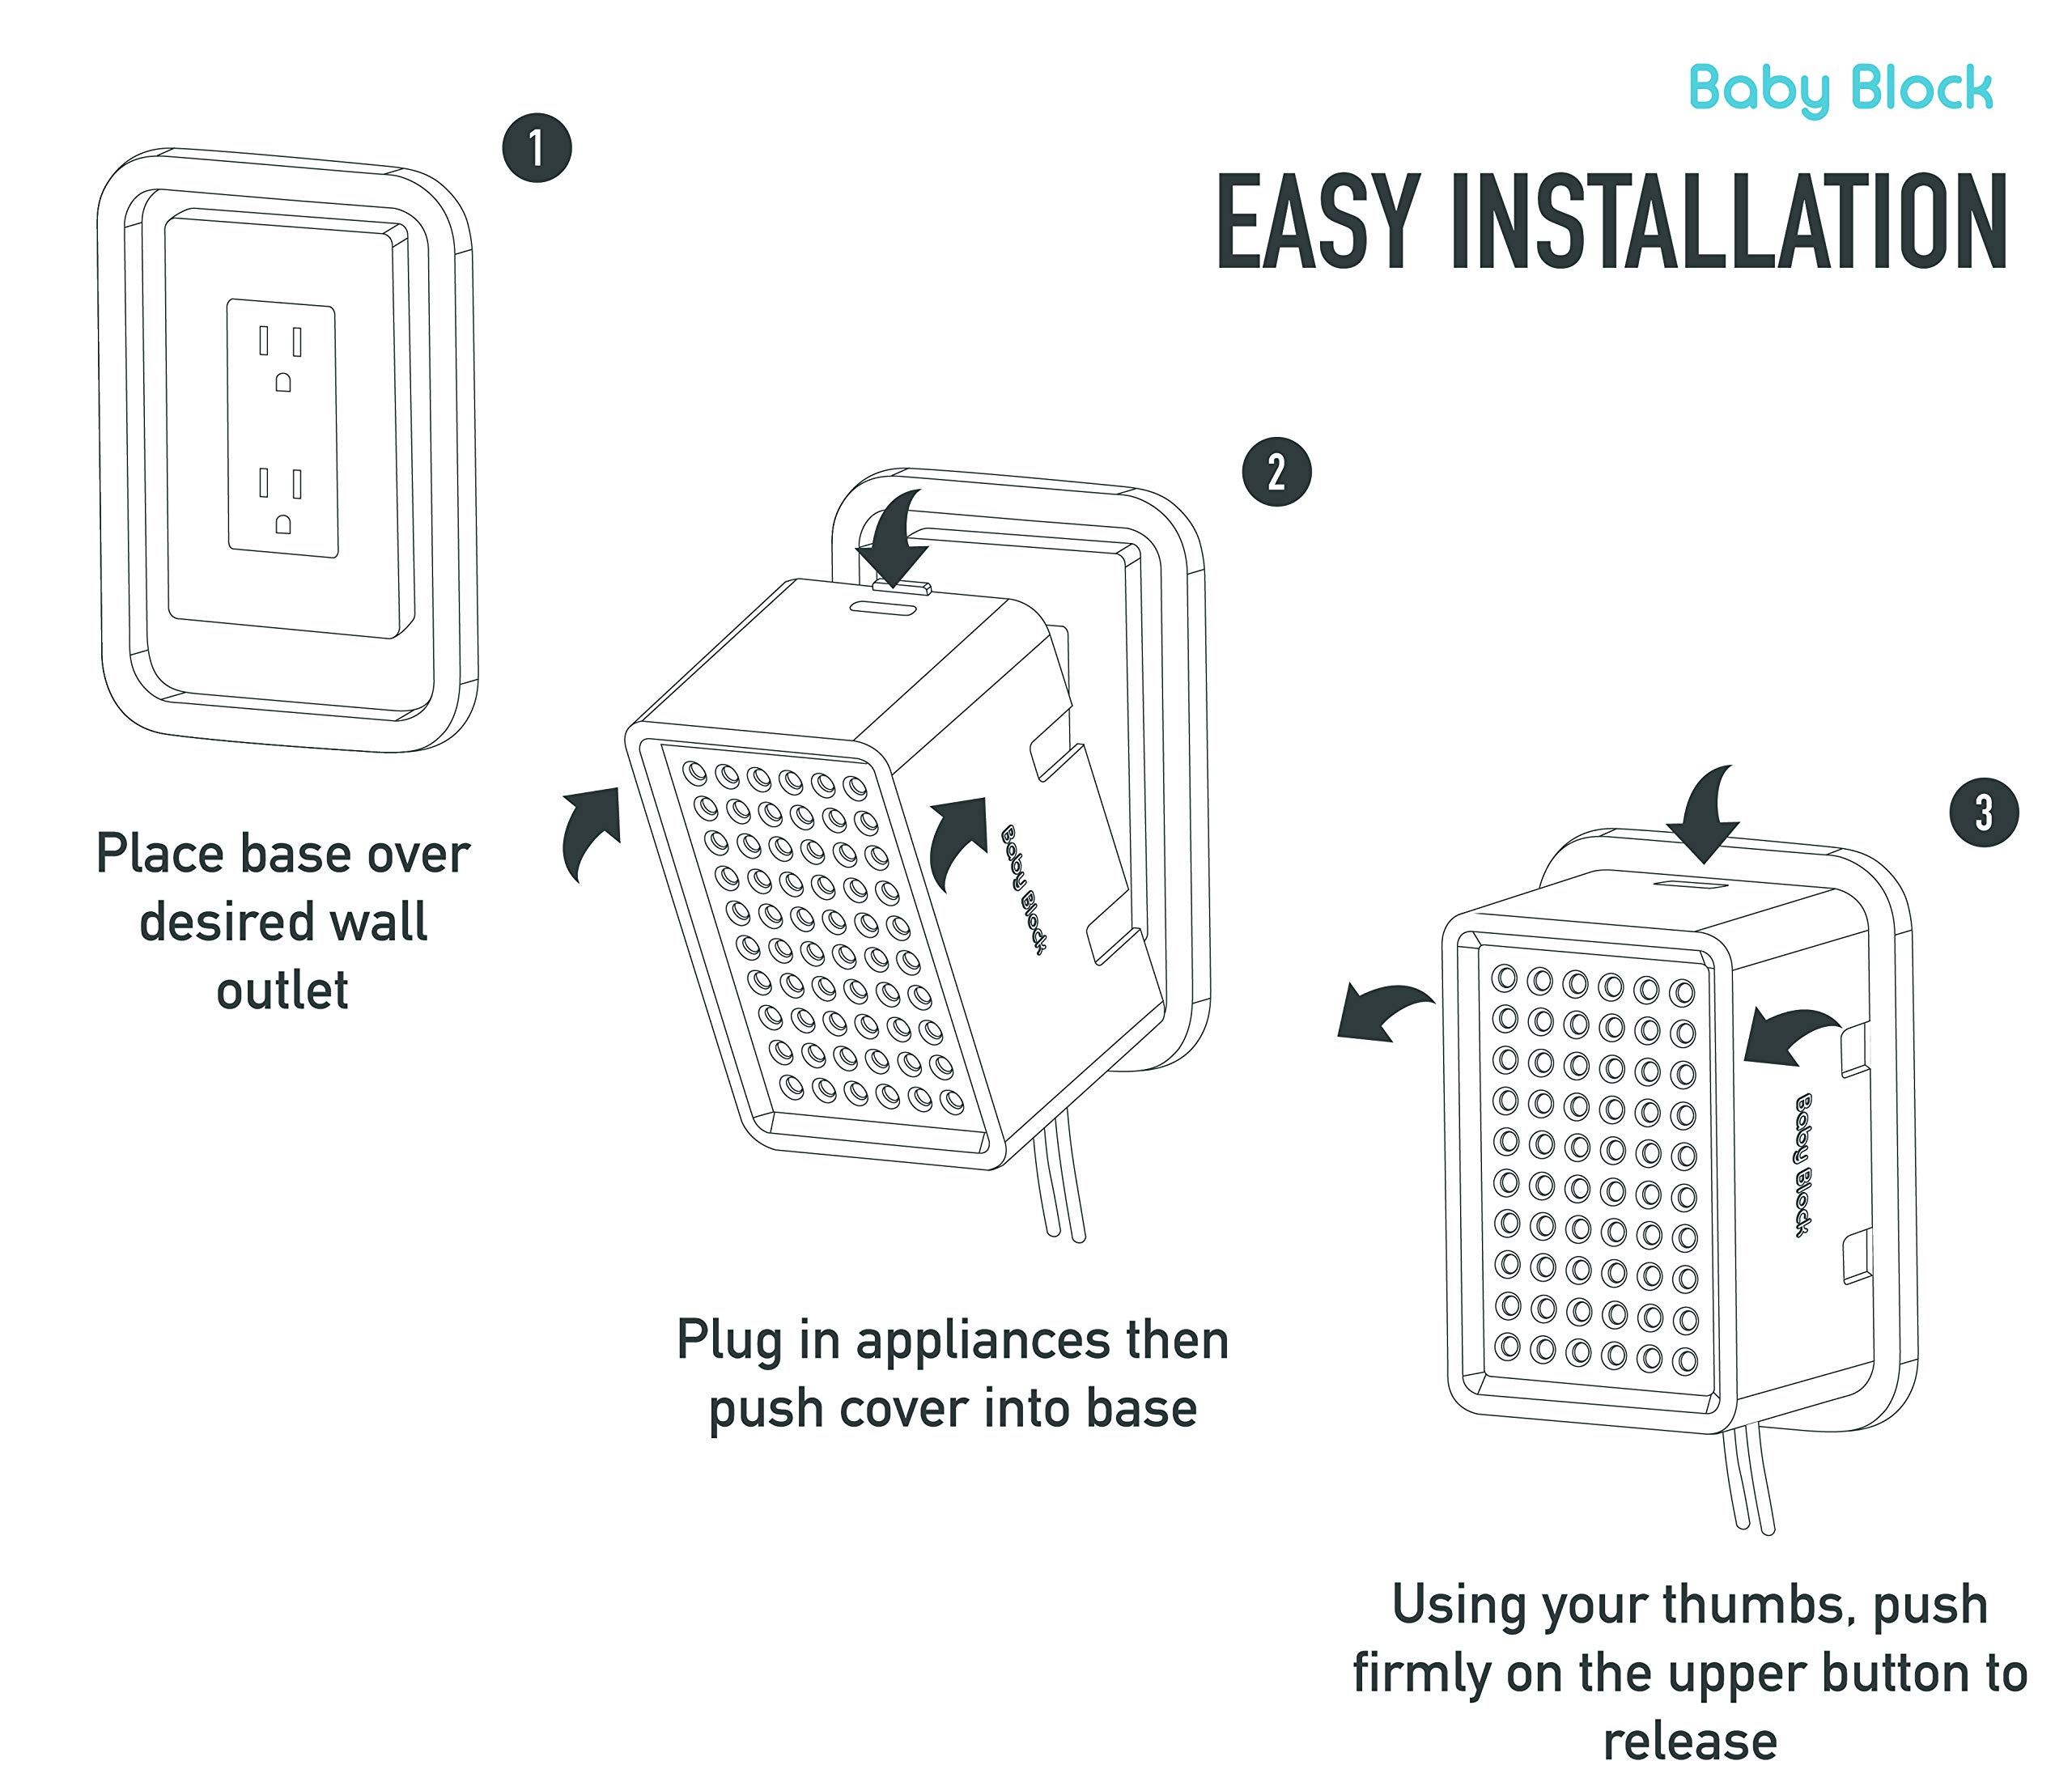 New: Universal Electric Outlet Cover | Child Safety & Baby Proofing | Protect Power Outlets, Wall Sockets and Plugs by Baby Block (Image #5)